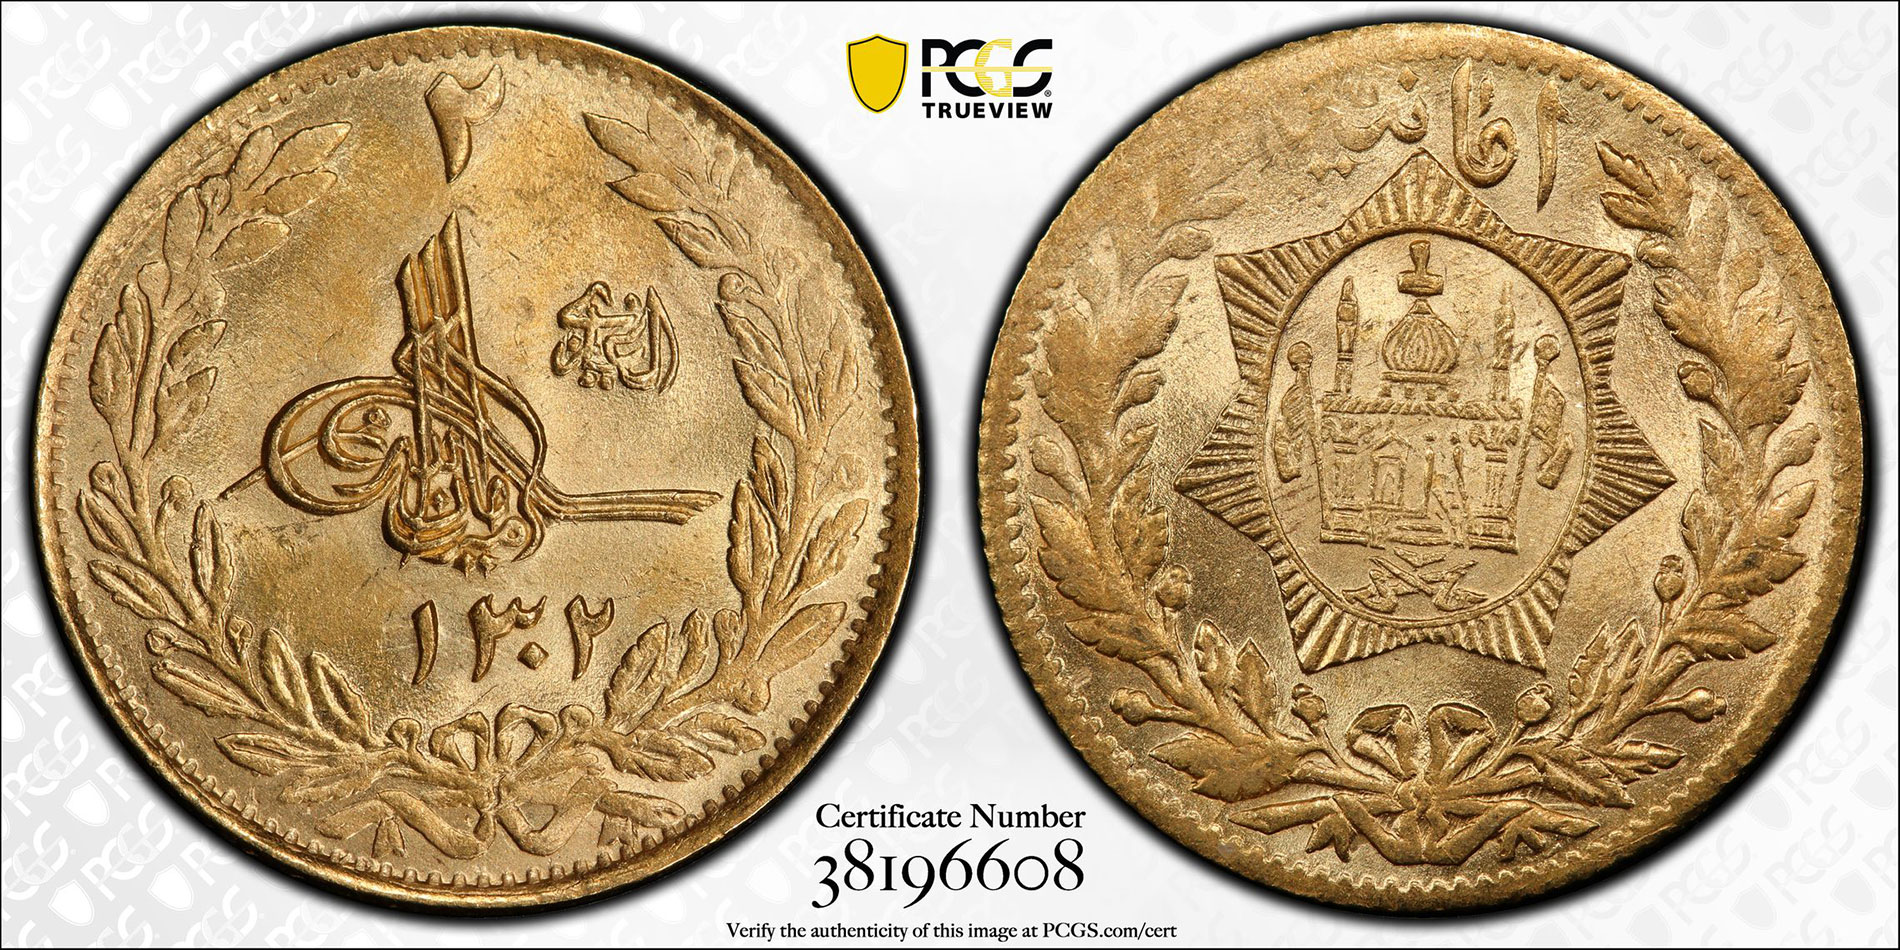 SH1302 (1923) 2 Am Afghanistan PCGS MS64. Images courtesy PCGS